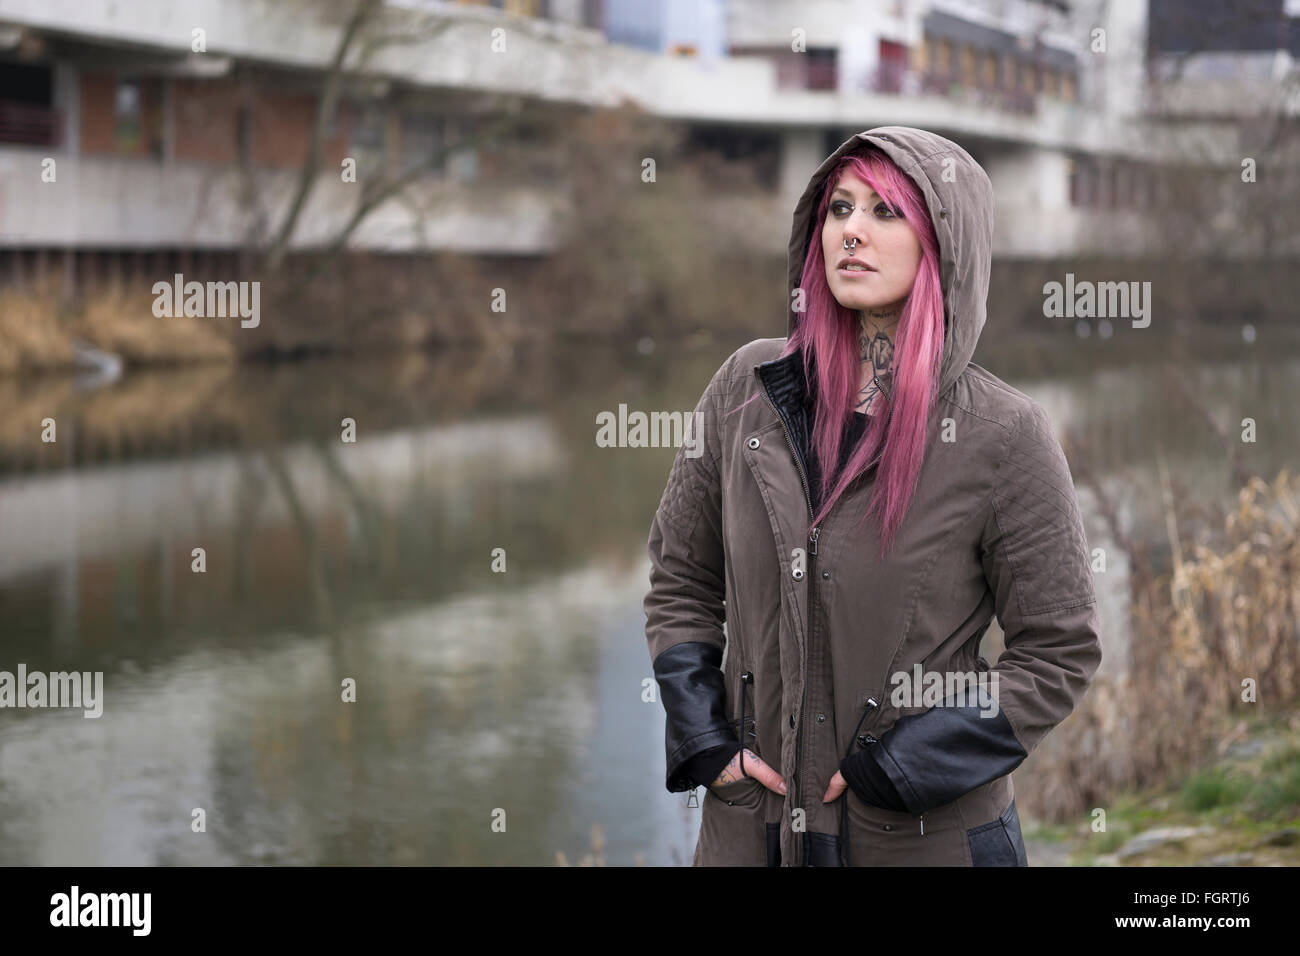 woman with pink hair in bleak surroundings - Stock Image